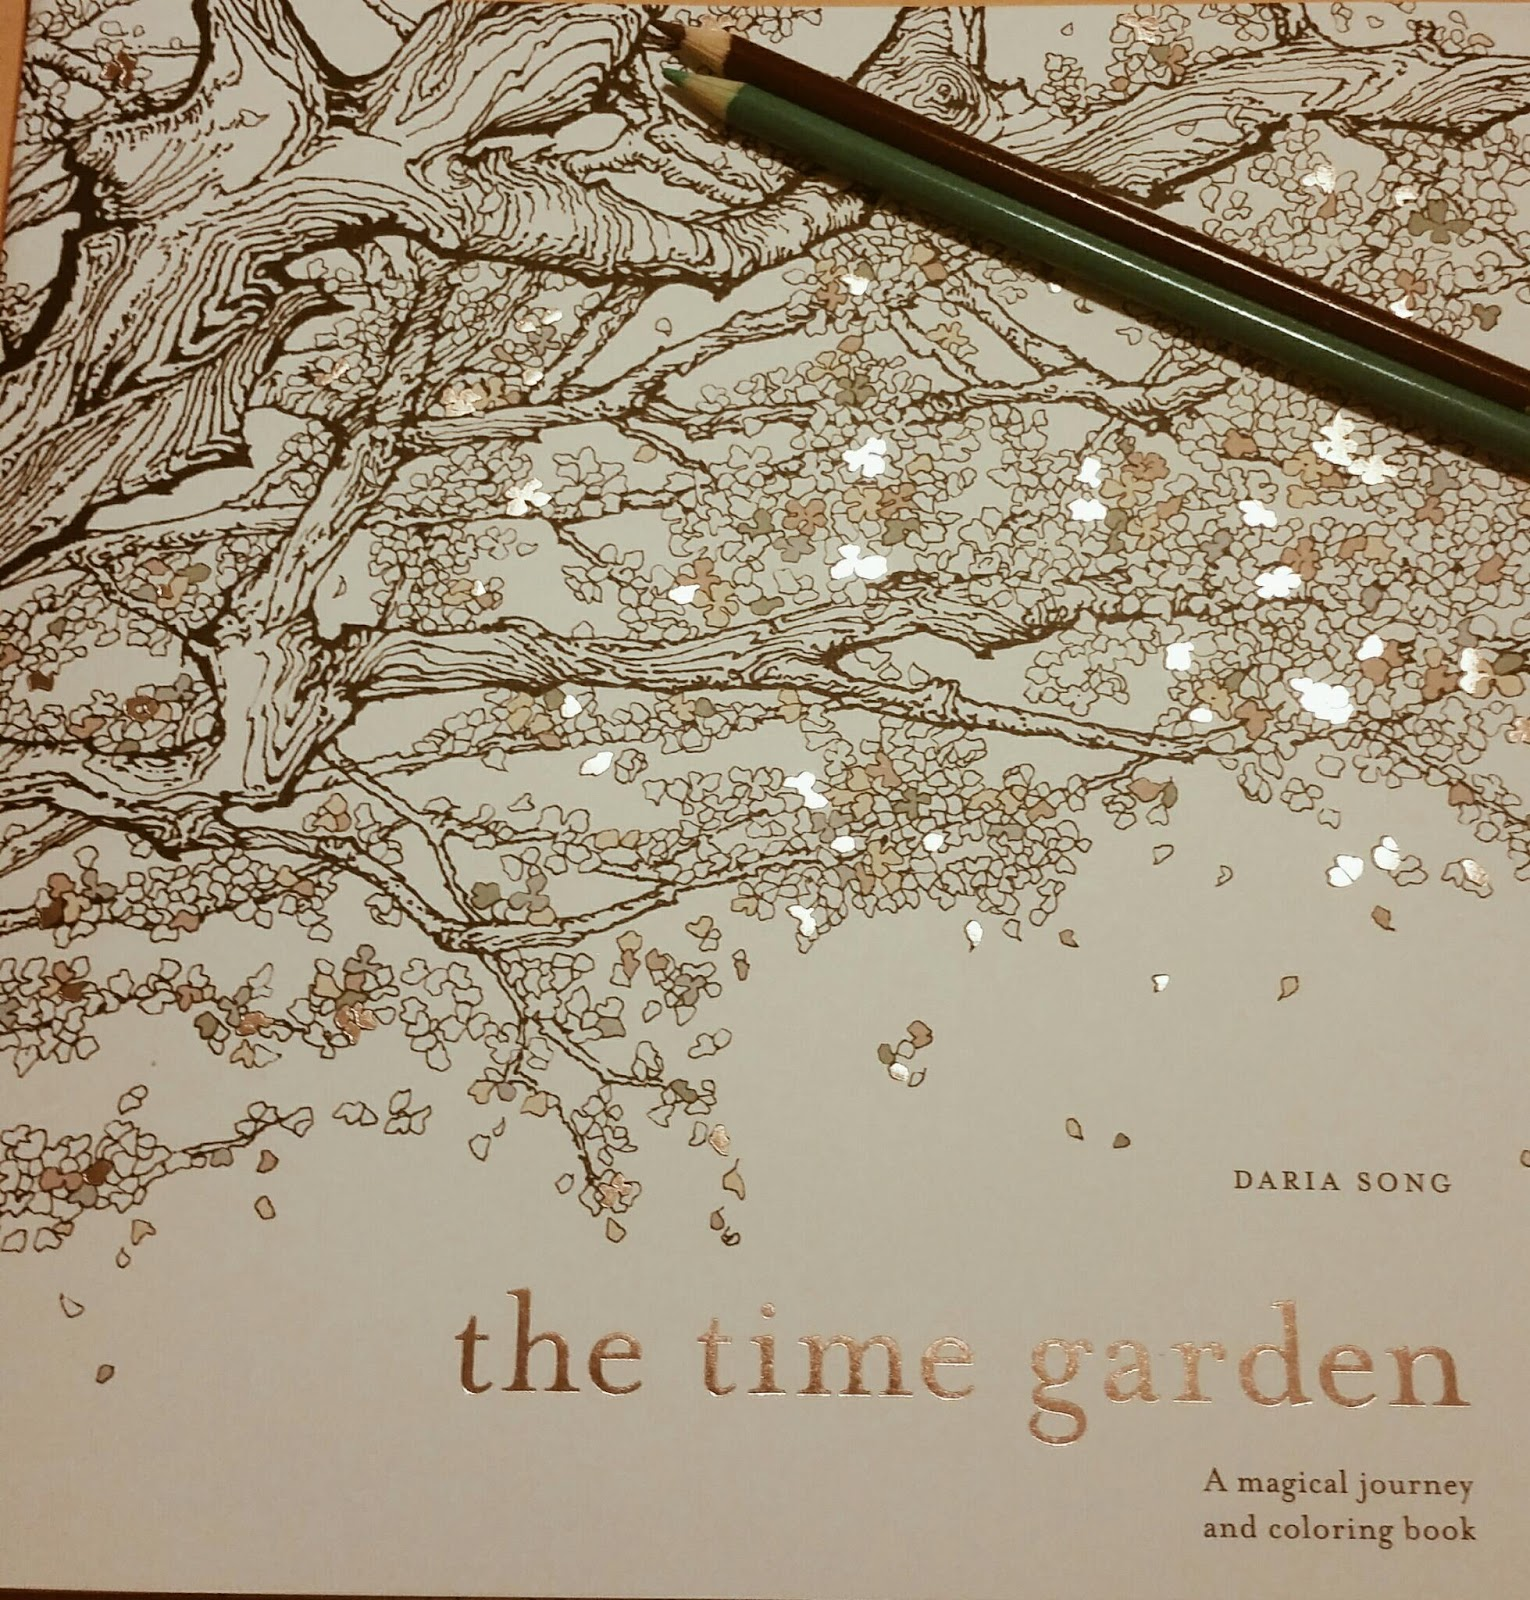 The Time Garden Daria Song